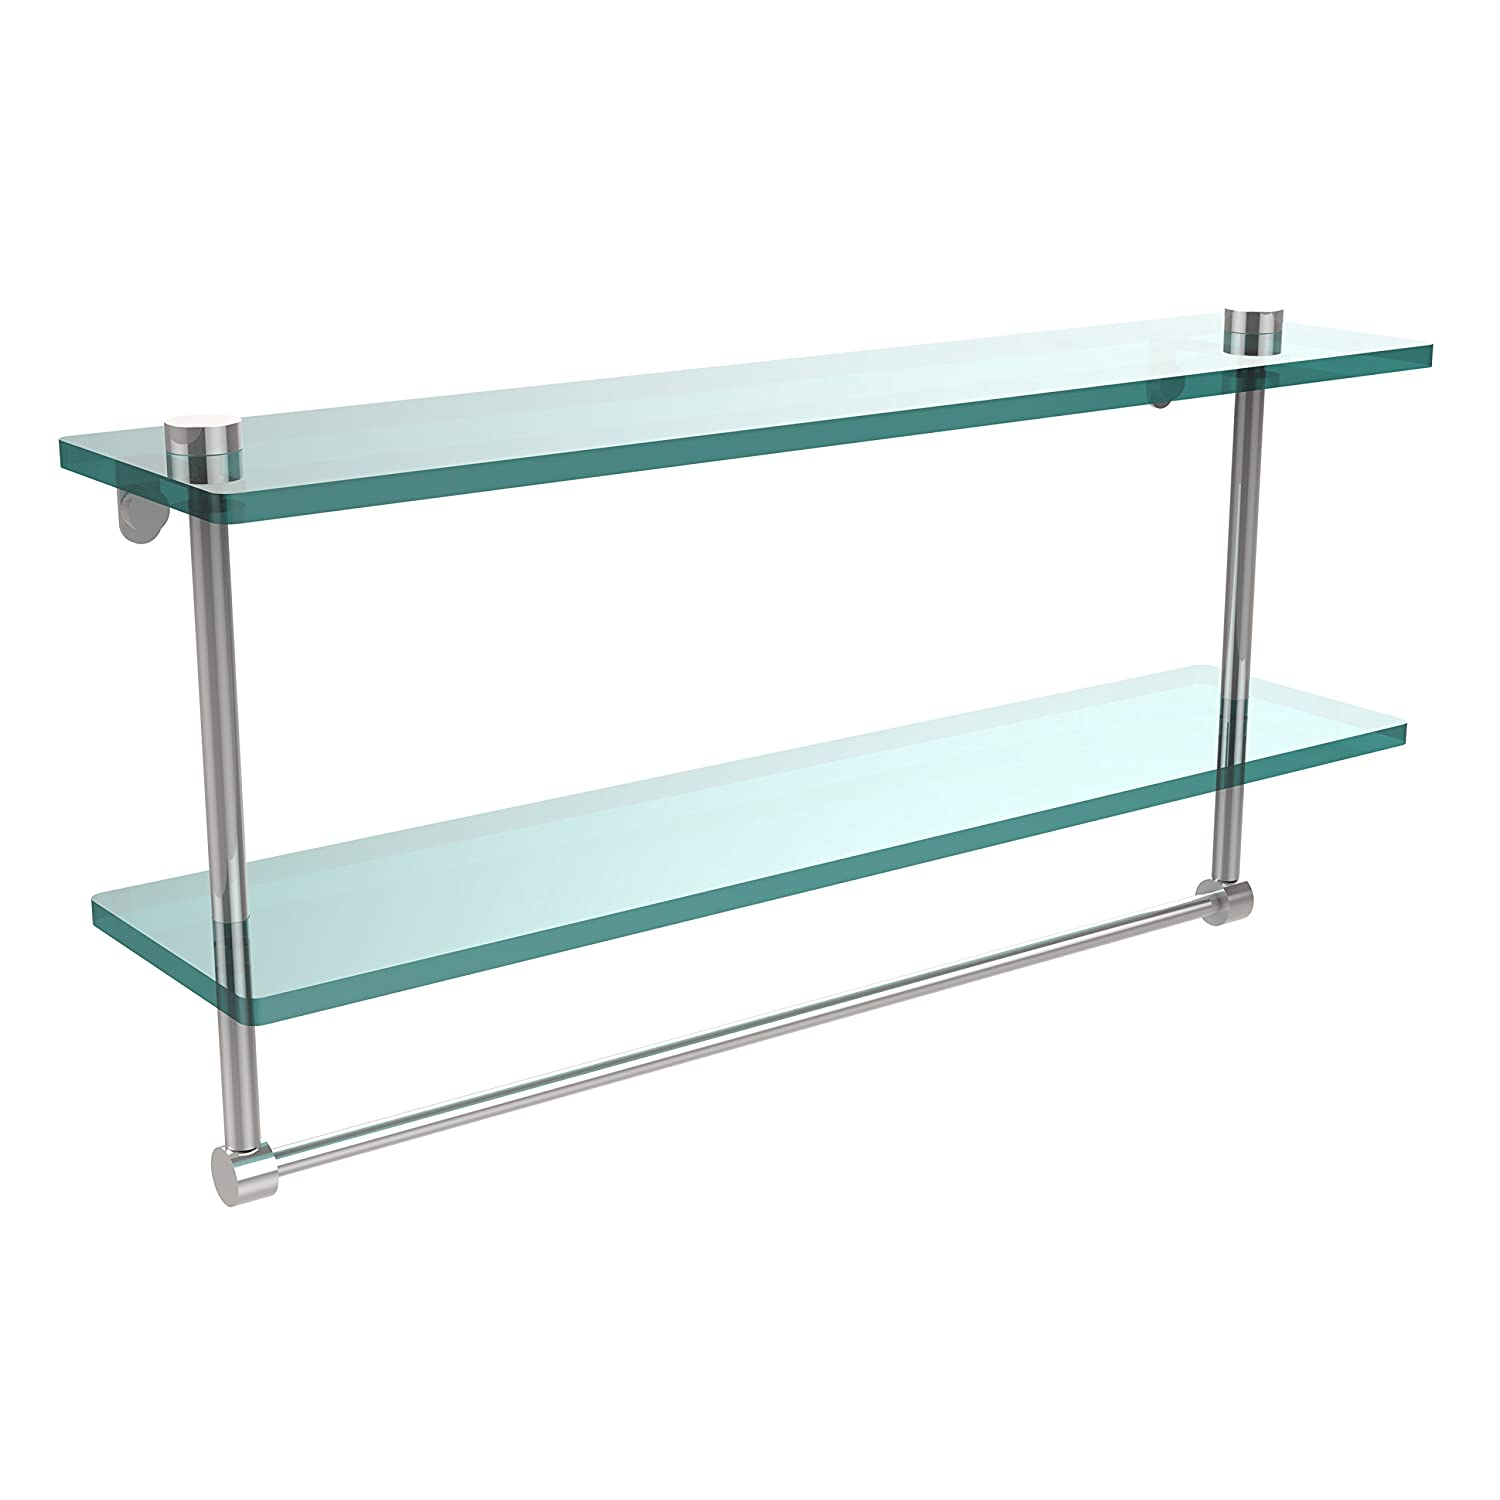 Allied Brass NS-2/22TB-PC 22-Inch Double Glass Shelf with Towel Bar by Allied Brass B004J4NMWG 光沢クロム 光沢クロム